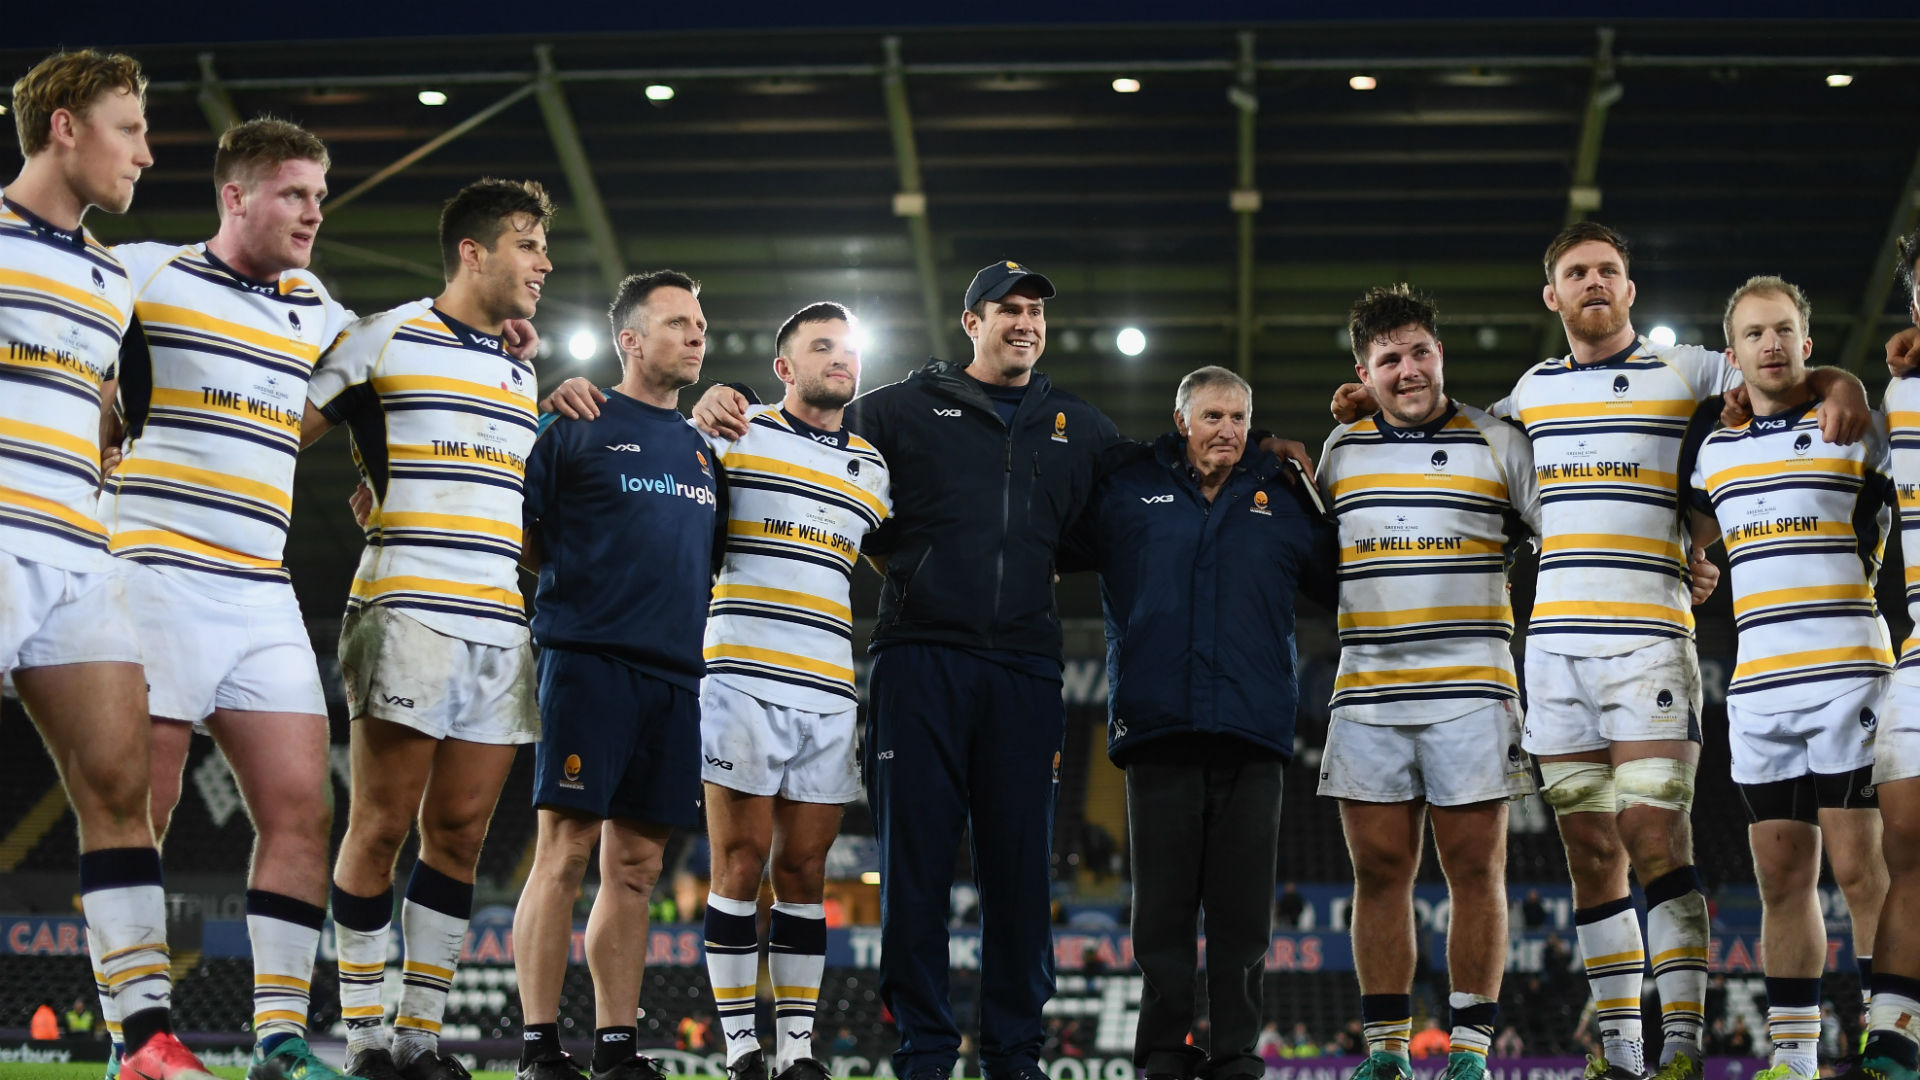 Worcester and Clermont reach Challenge Cup quarter-finals